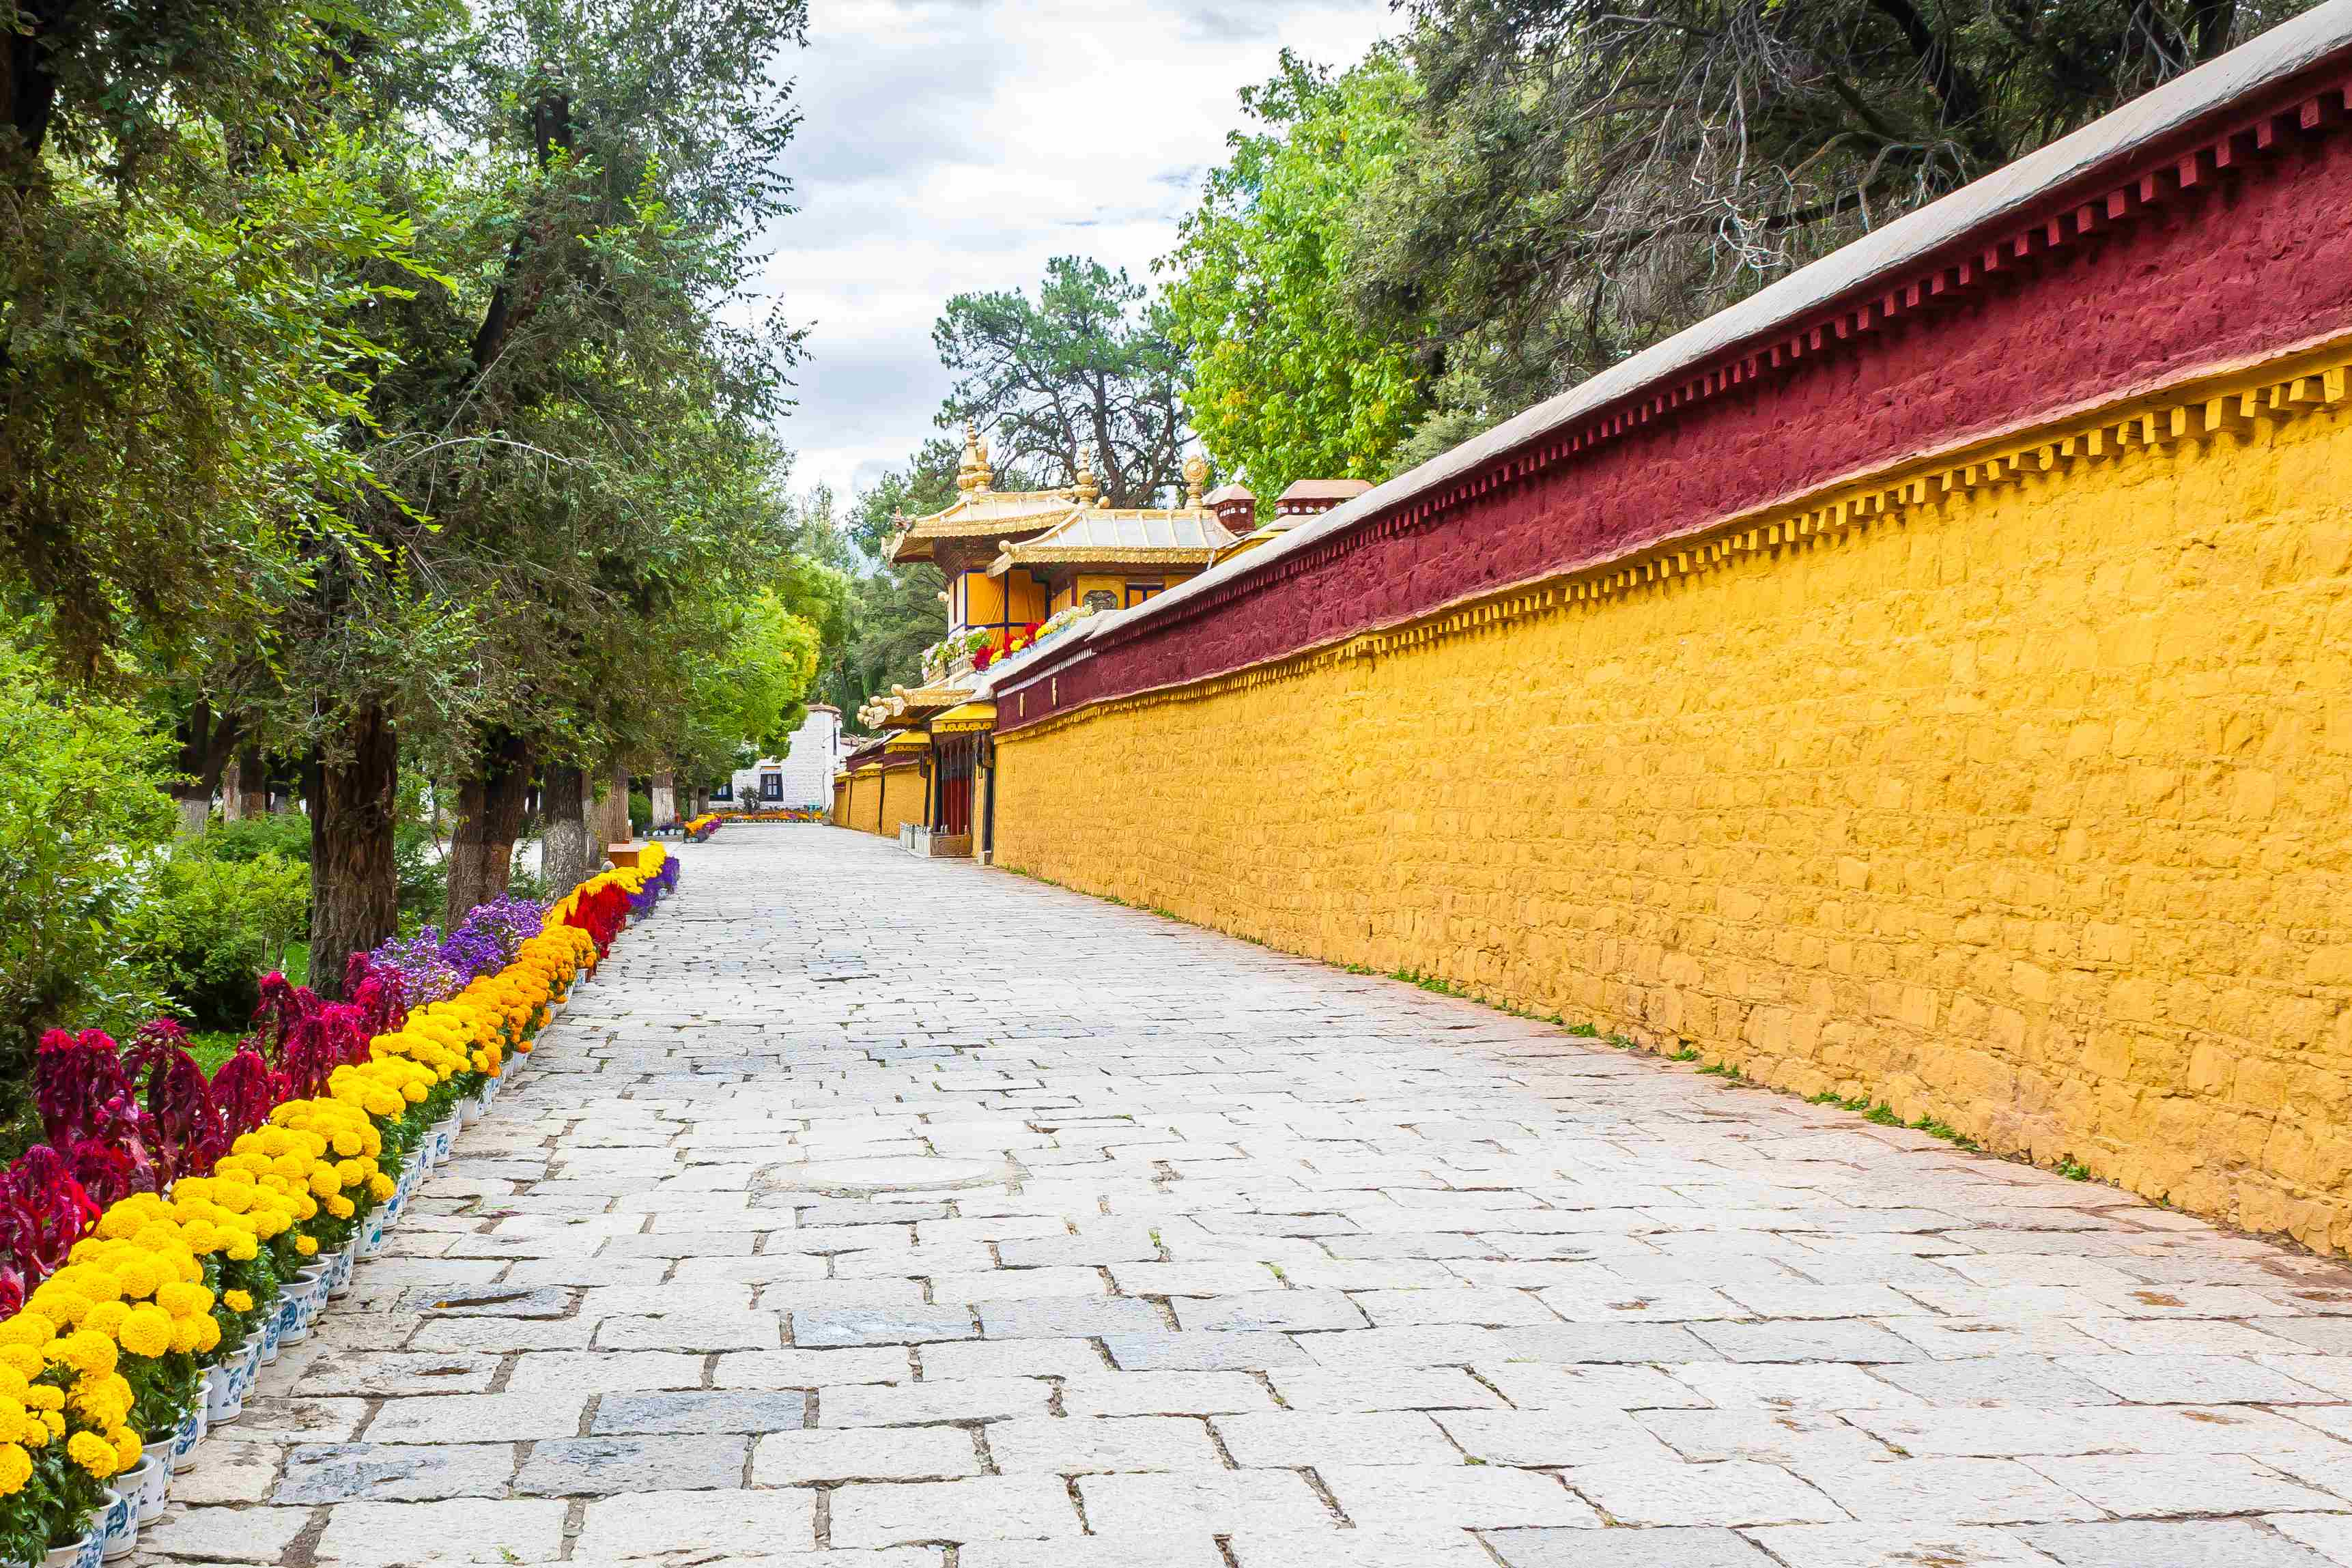 Norbulingka or Jewel Park in Lhasa